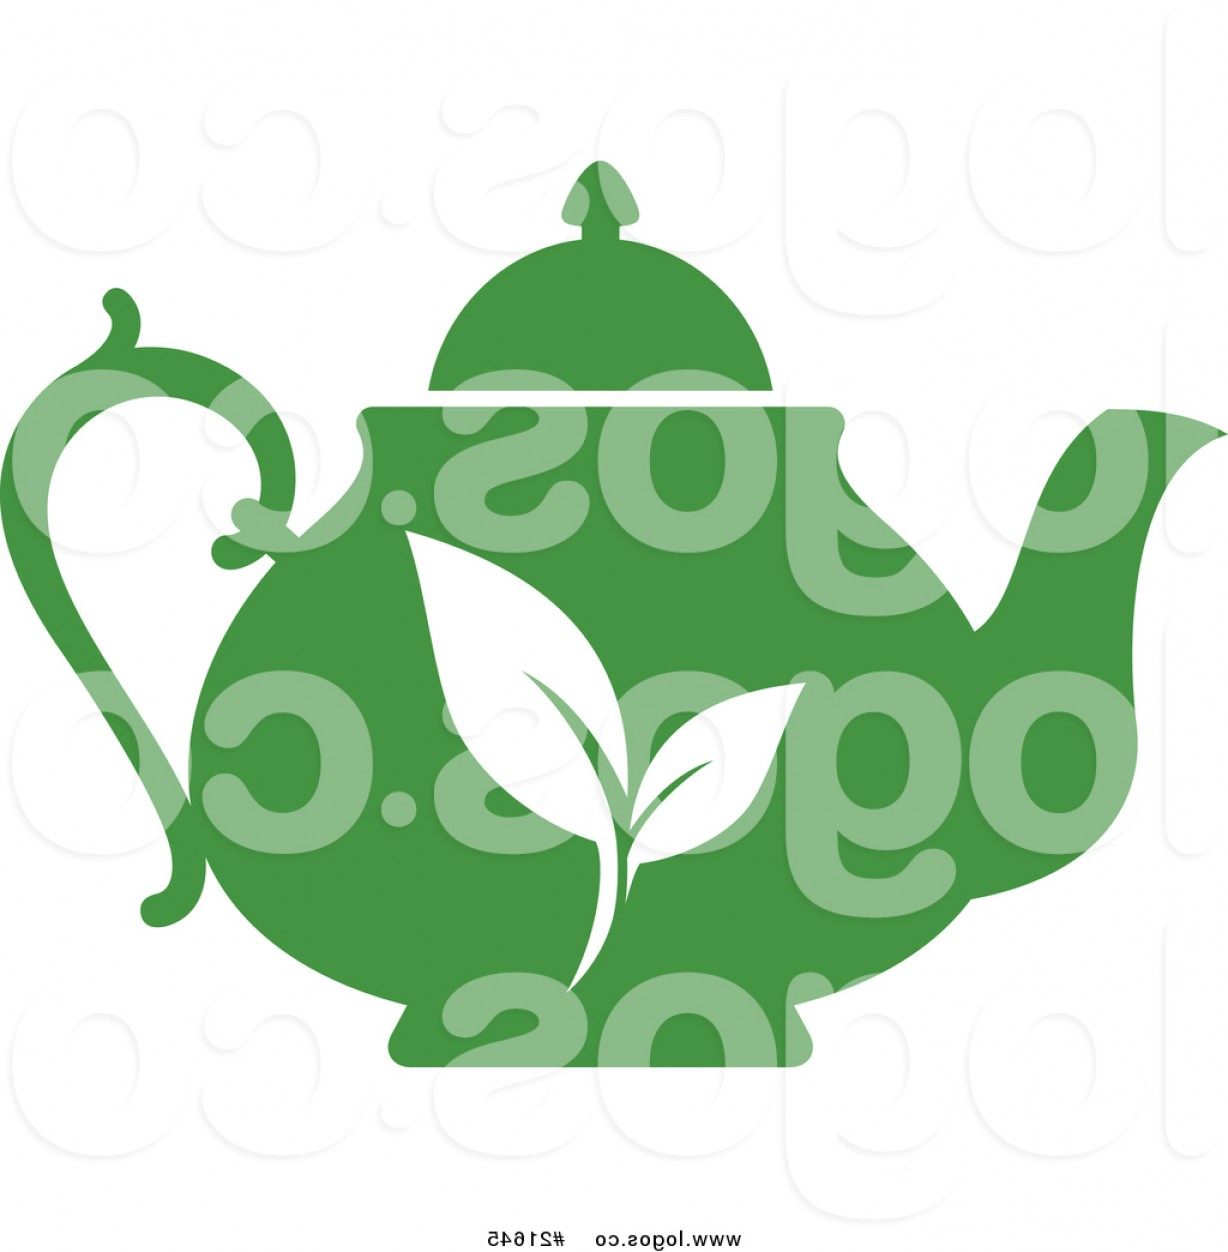 Tea Pot Vector: Royalty Free Vector Logo Of A Green Tea Pot With Plant Leaves On The Side By Vector Tradition Sm